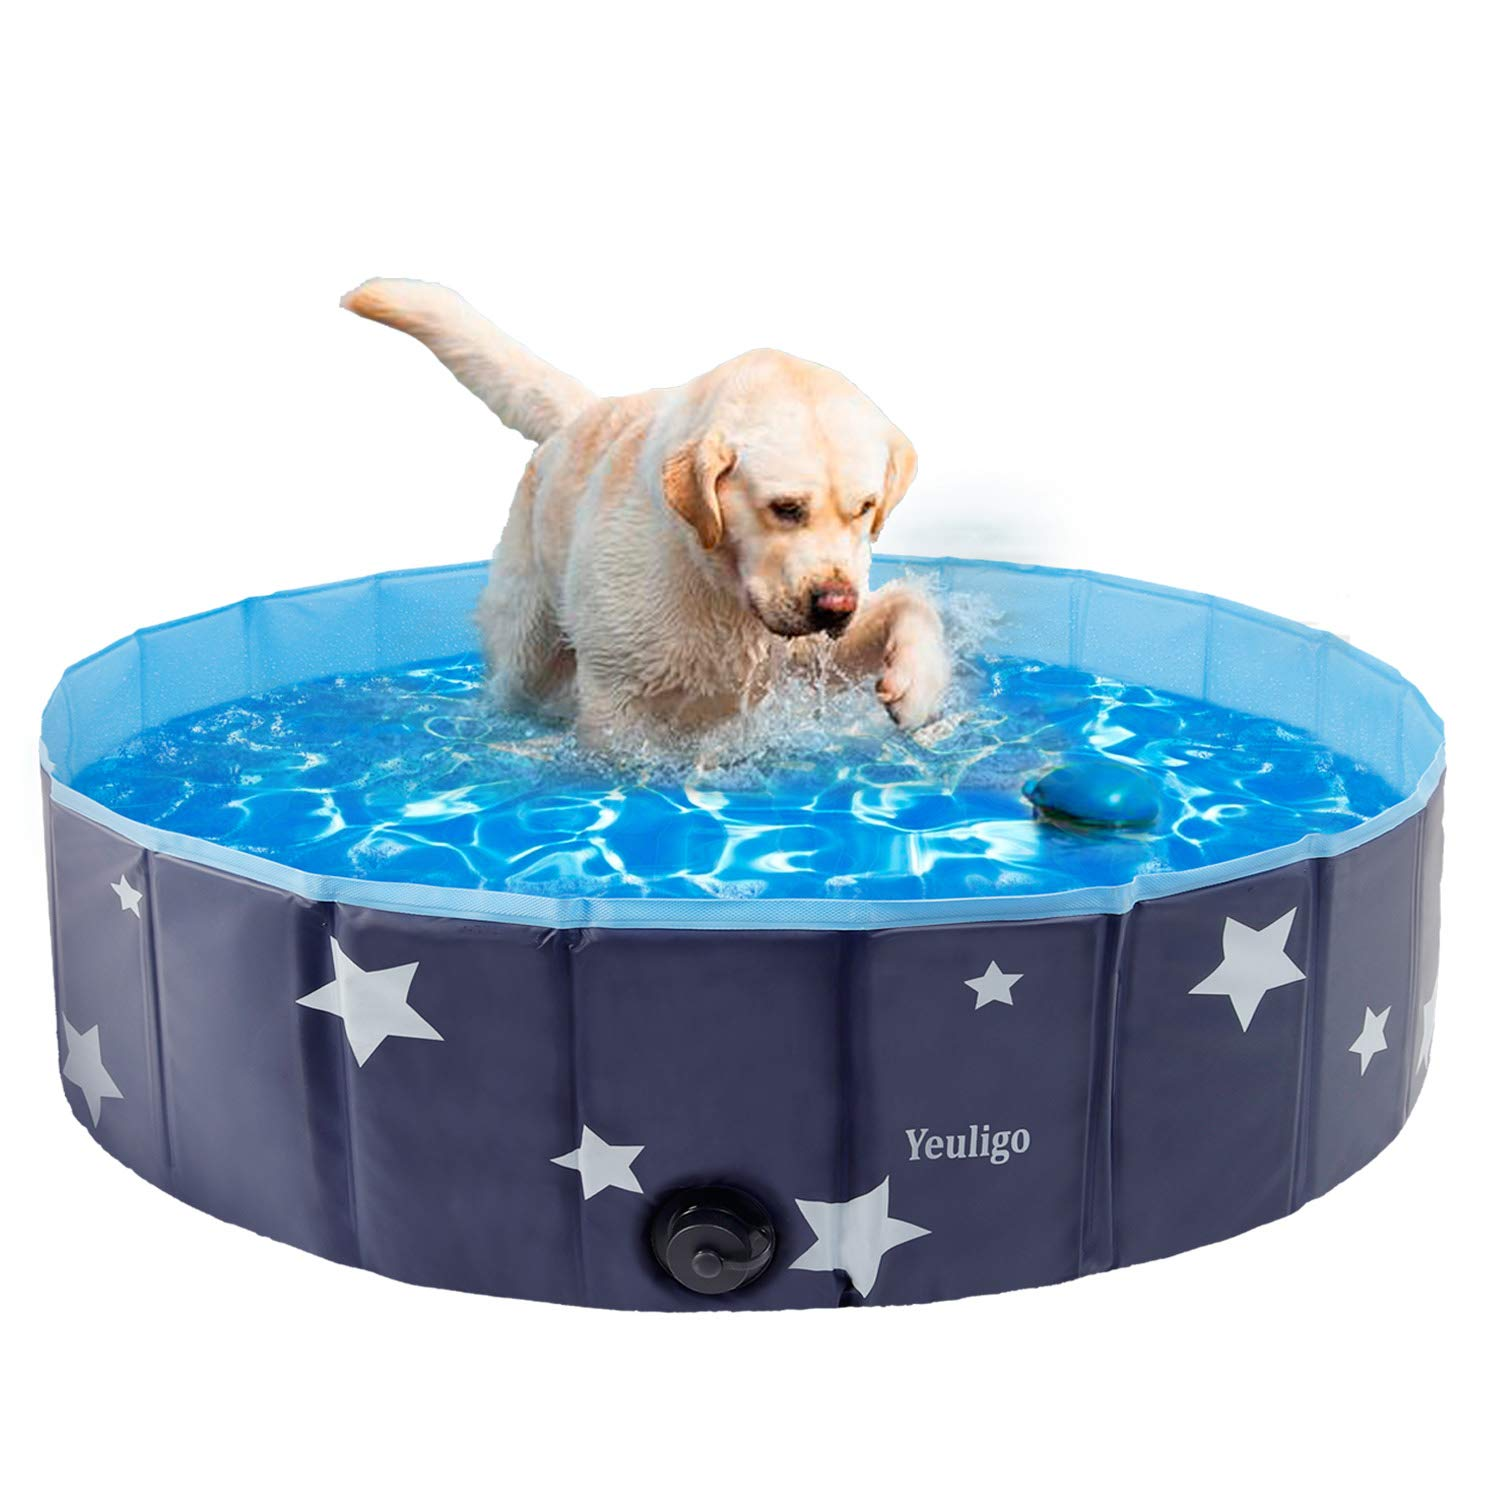 Yeuligo Dog Pool, Foldable Bathing Tub Kiddie Pool, Portable and Stable Swimming Pool for Dogs Cats Pets, Suitable for Summer Outdoor Garden Patio Bathroom